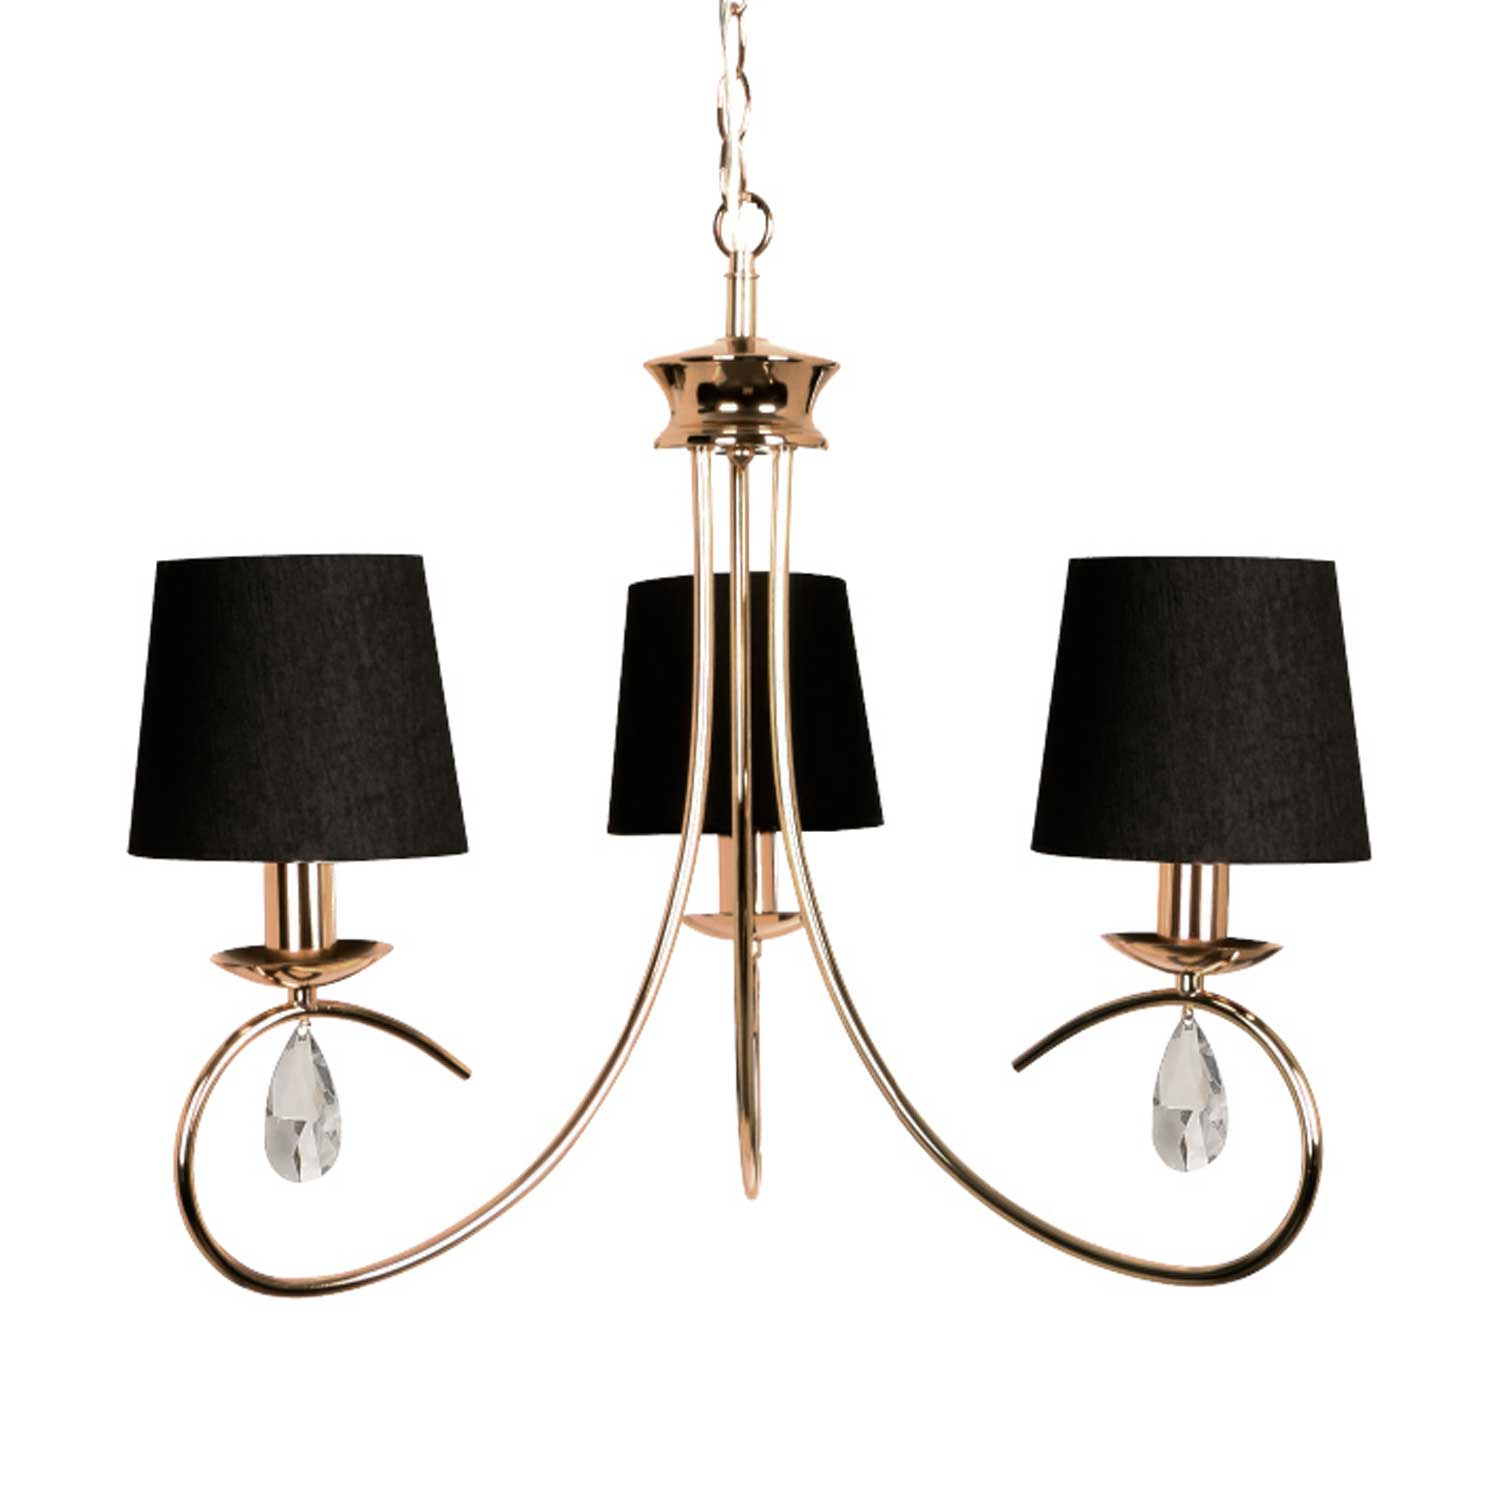 Hanging Metal Lamp With A Satin Cloth And Crystal Pvc Cable